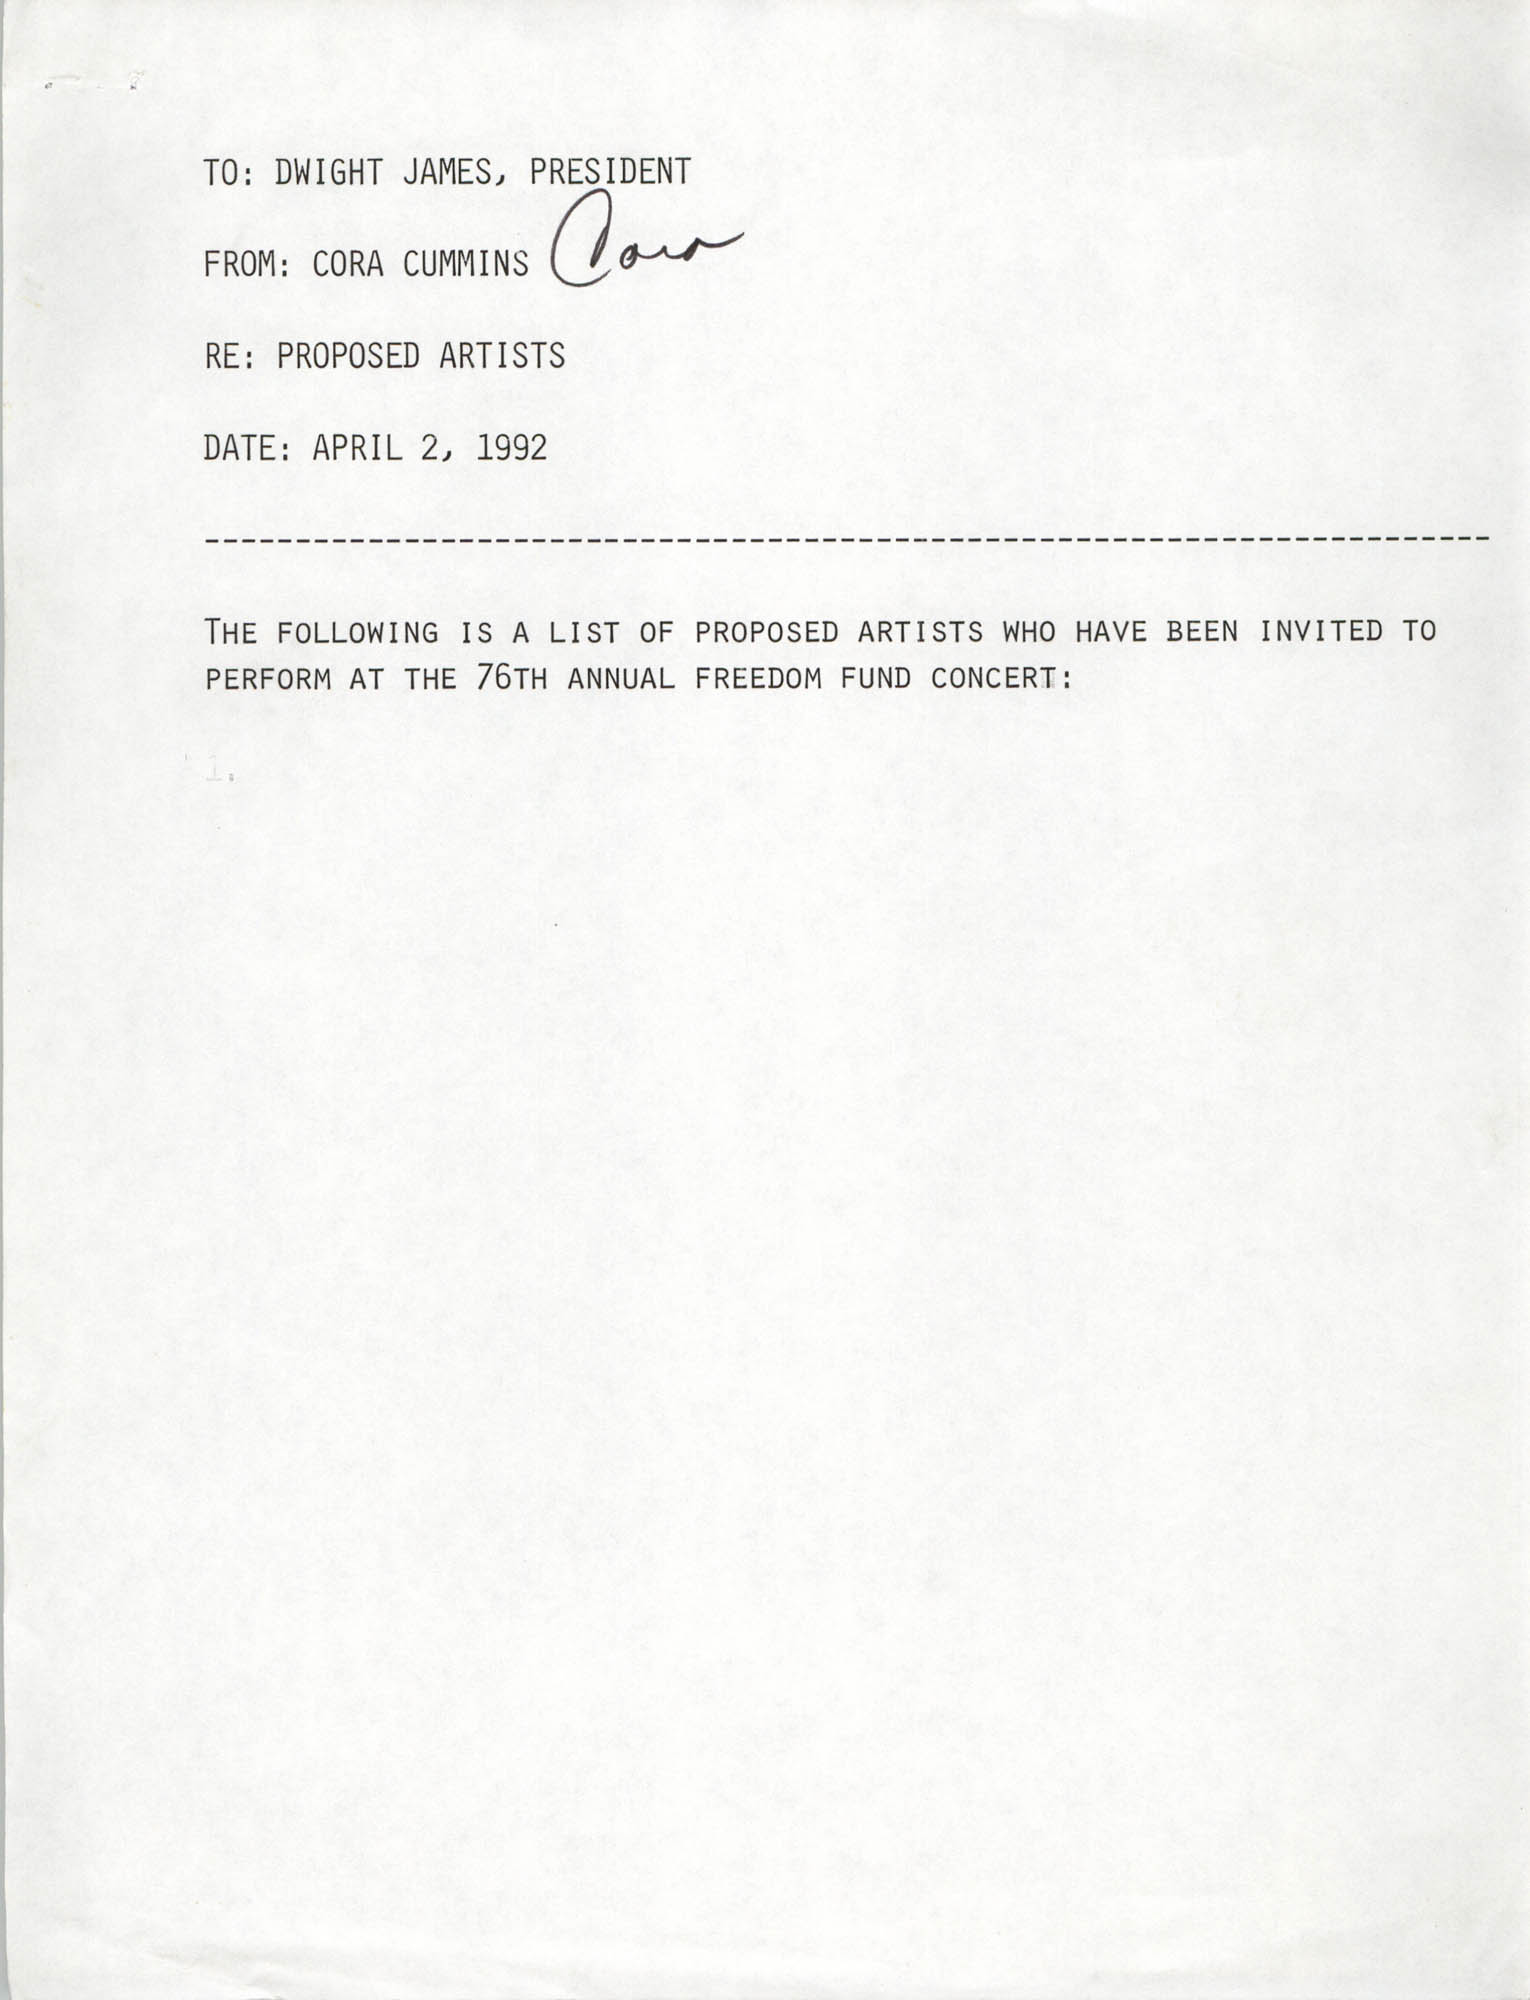 Cover Page, Cora Cummins to Dwight James, April 2, 1992